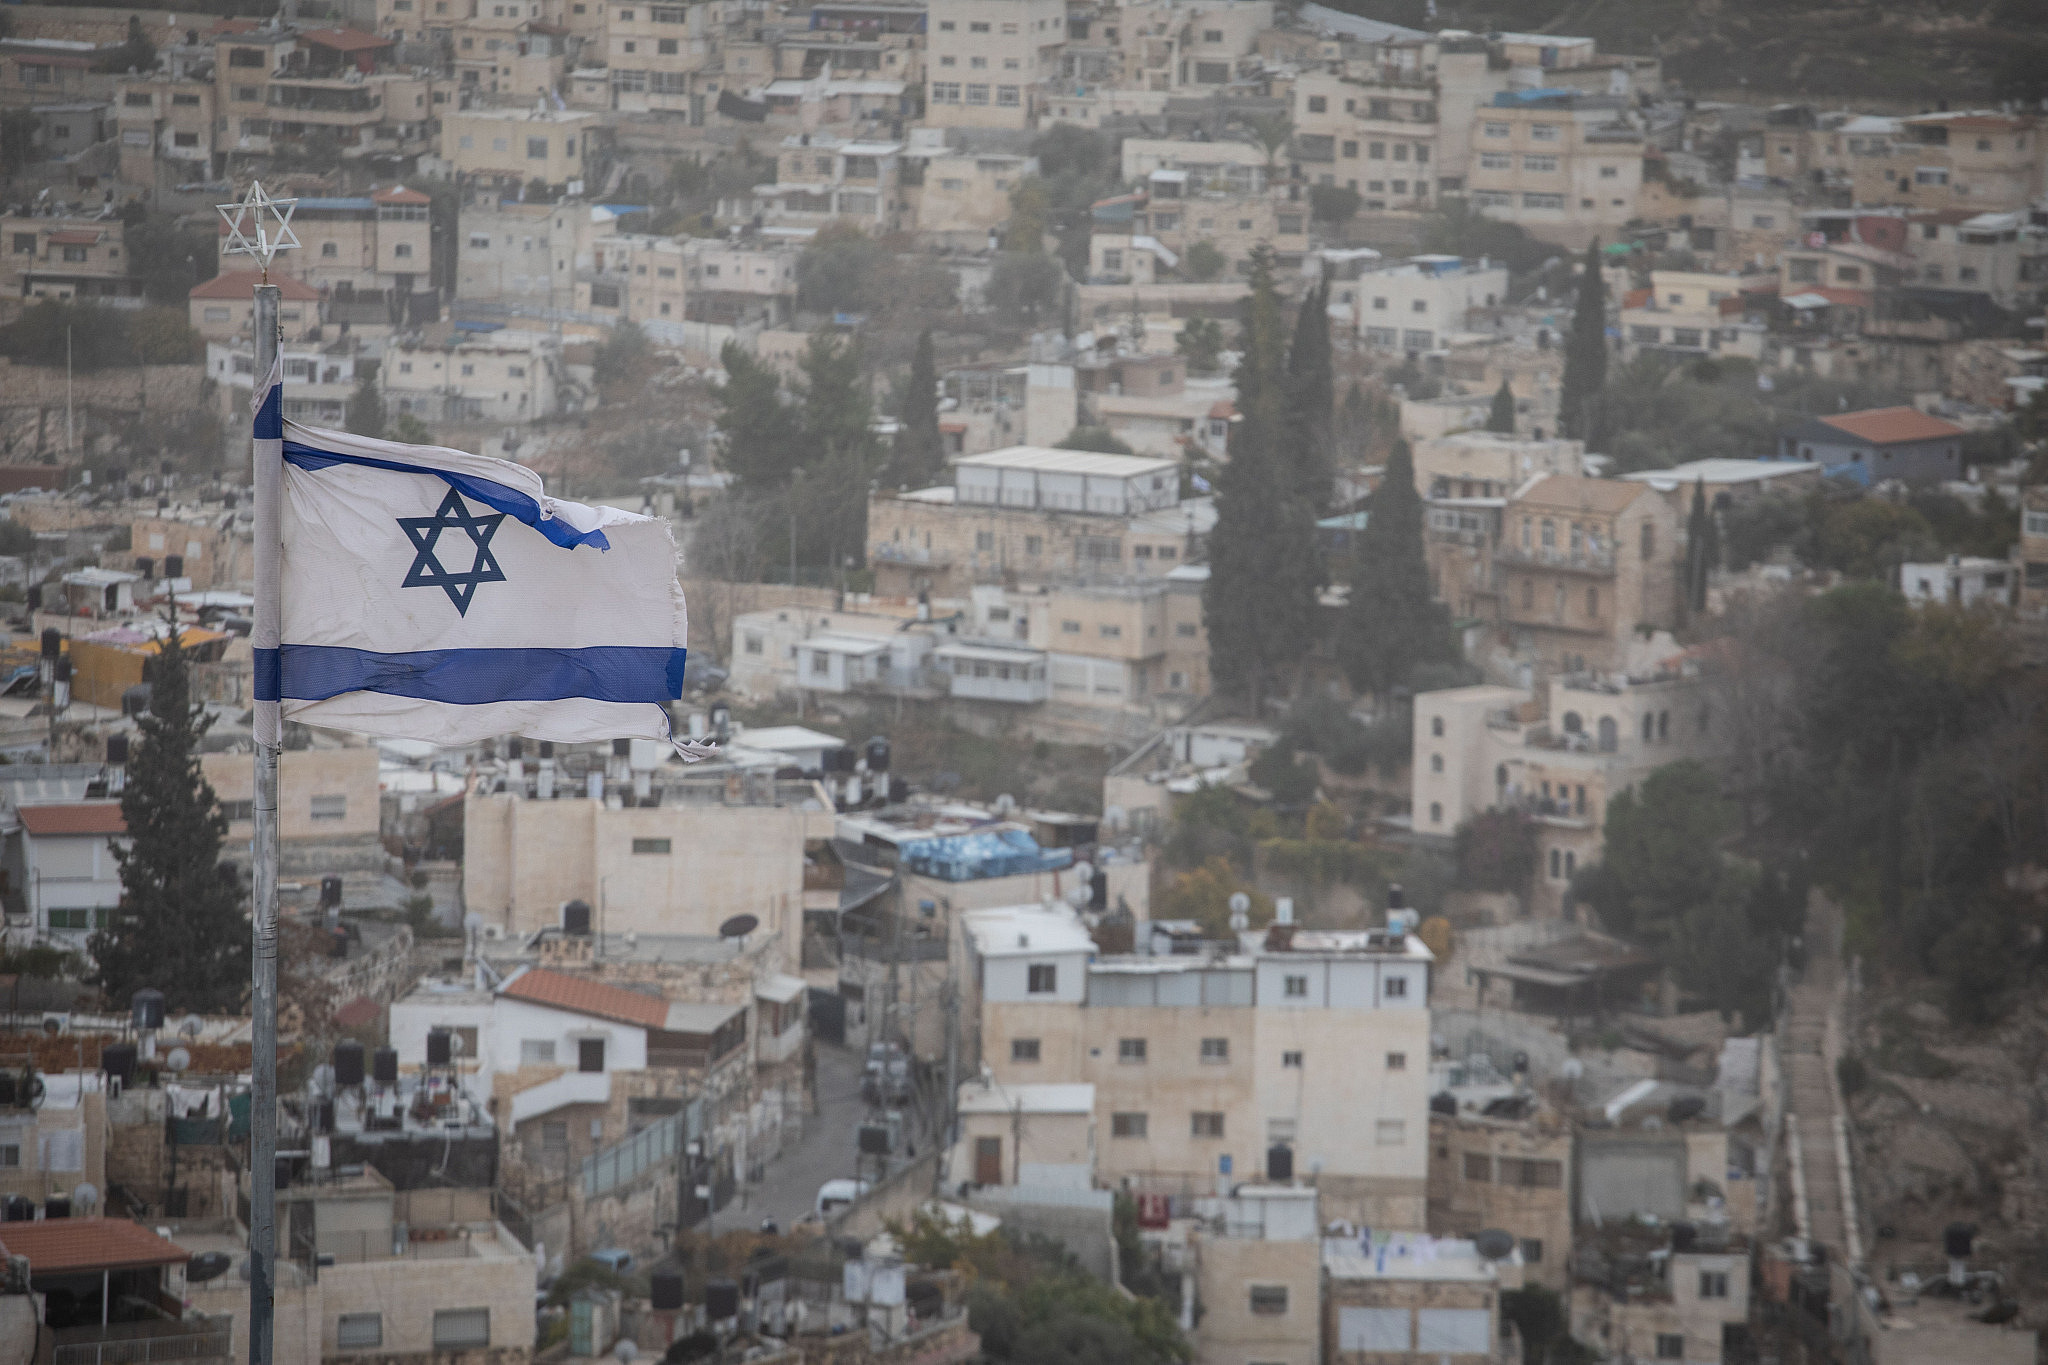 An Israeli flag over the East Jerusalem neighborhood of Silwan, seen from the Mount of Olives, December 25, 2019. (Hadas Parush/Flash90)